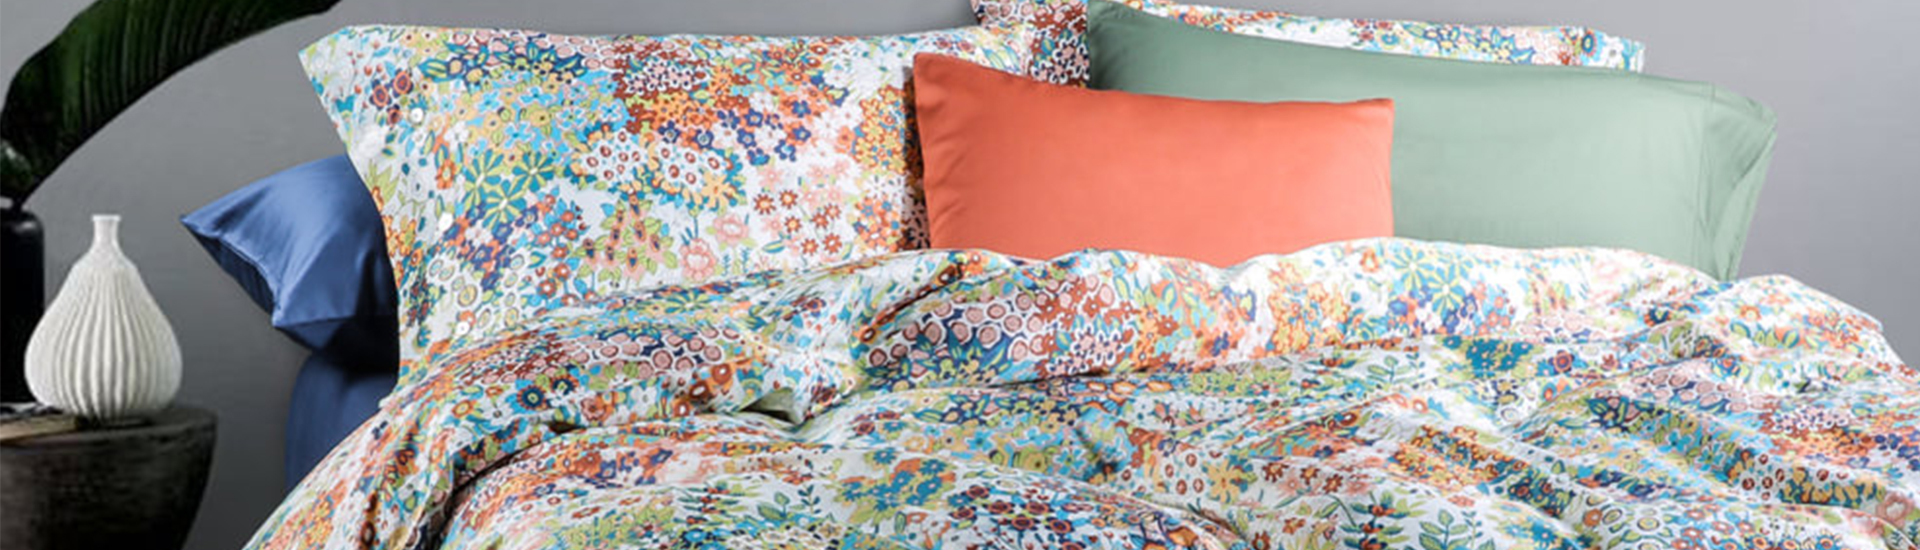 Heirloom Linens Canadian Bedding Amp Home Products